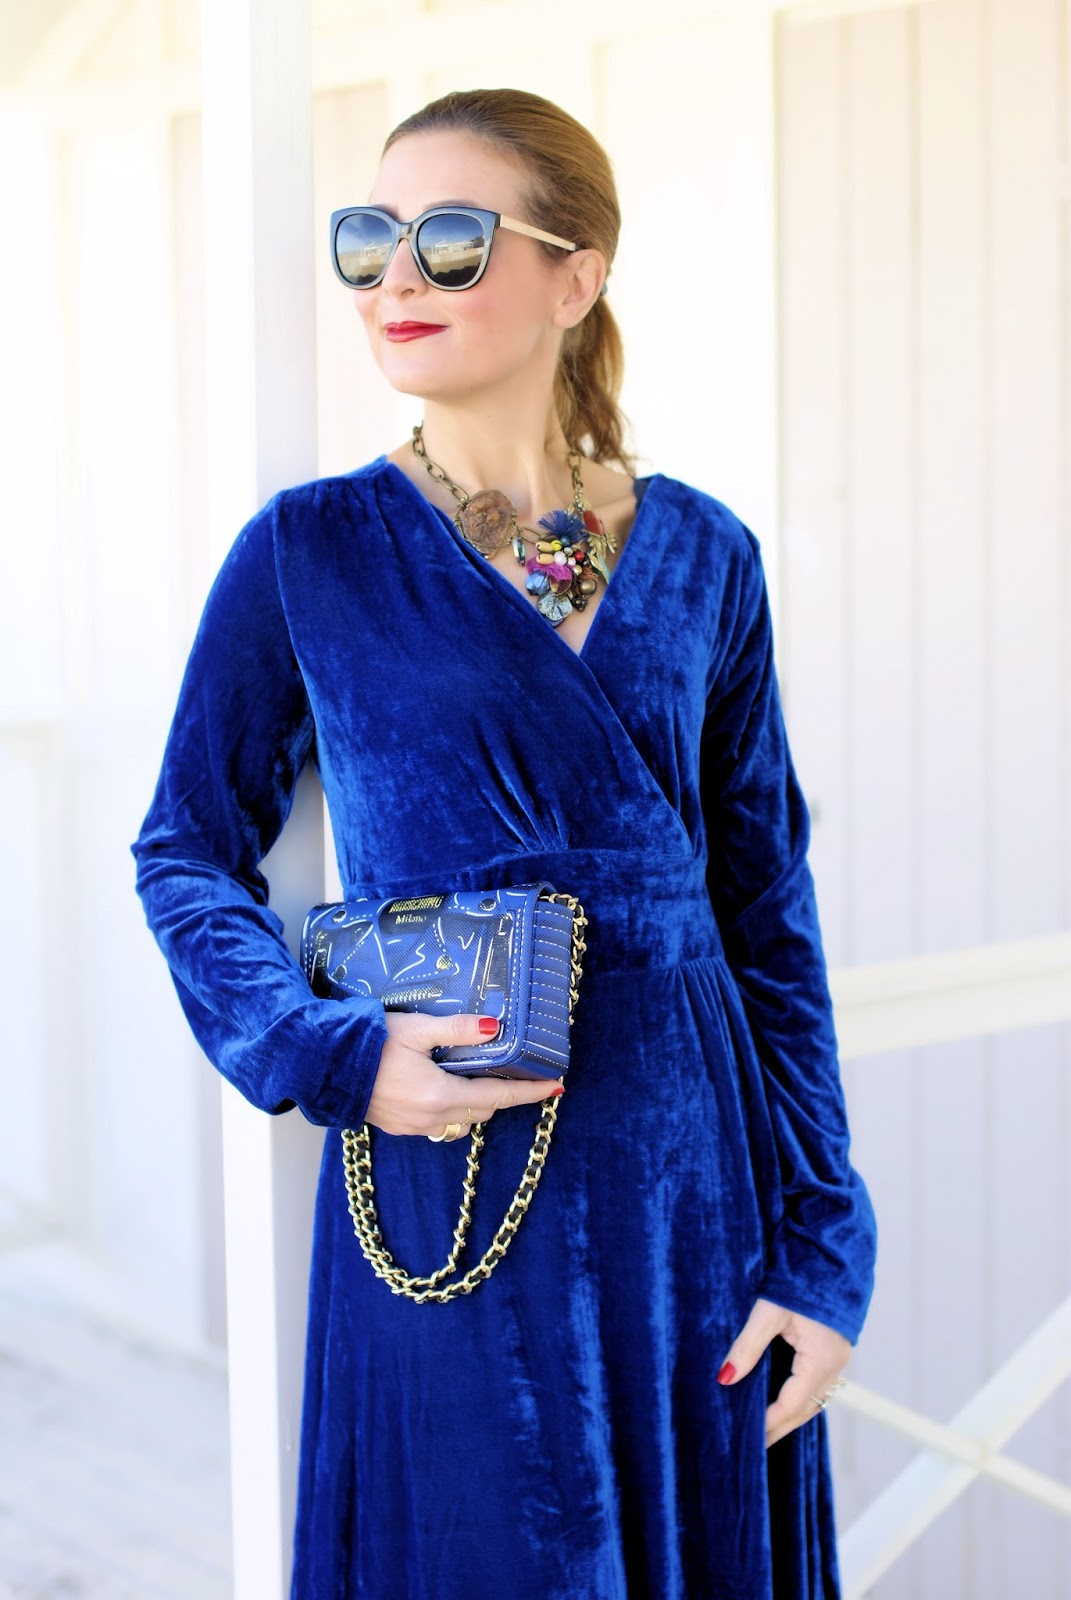 Rosegal velvet dress on Fashion and Cookies fashion blog, fashion blogger style